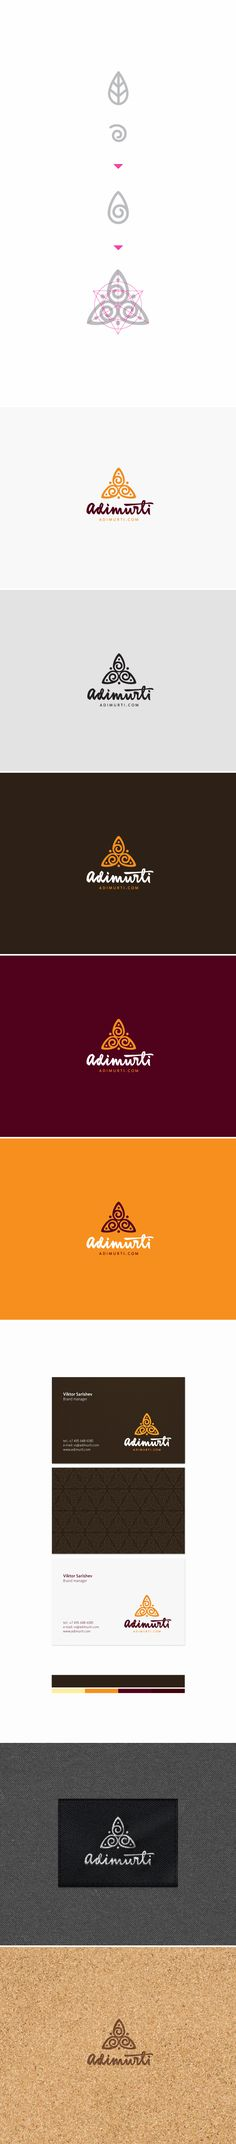 Adimurti on the Behance Network